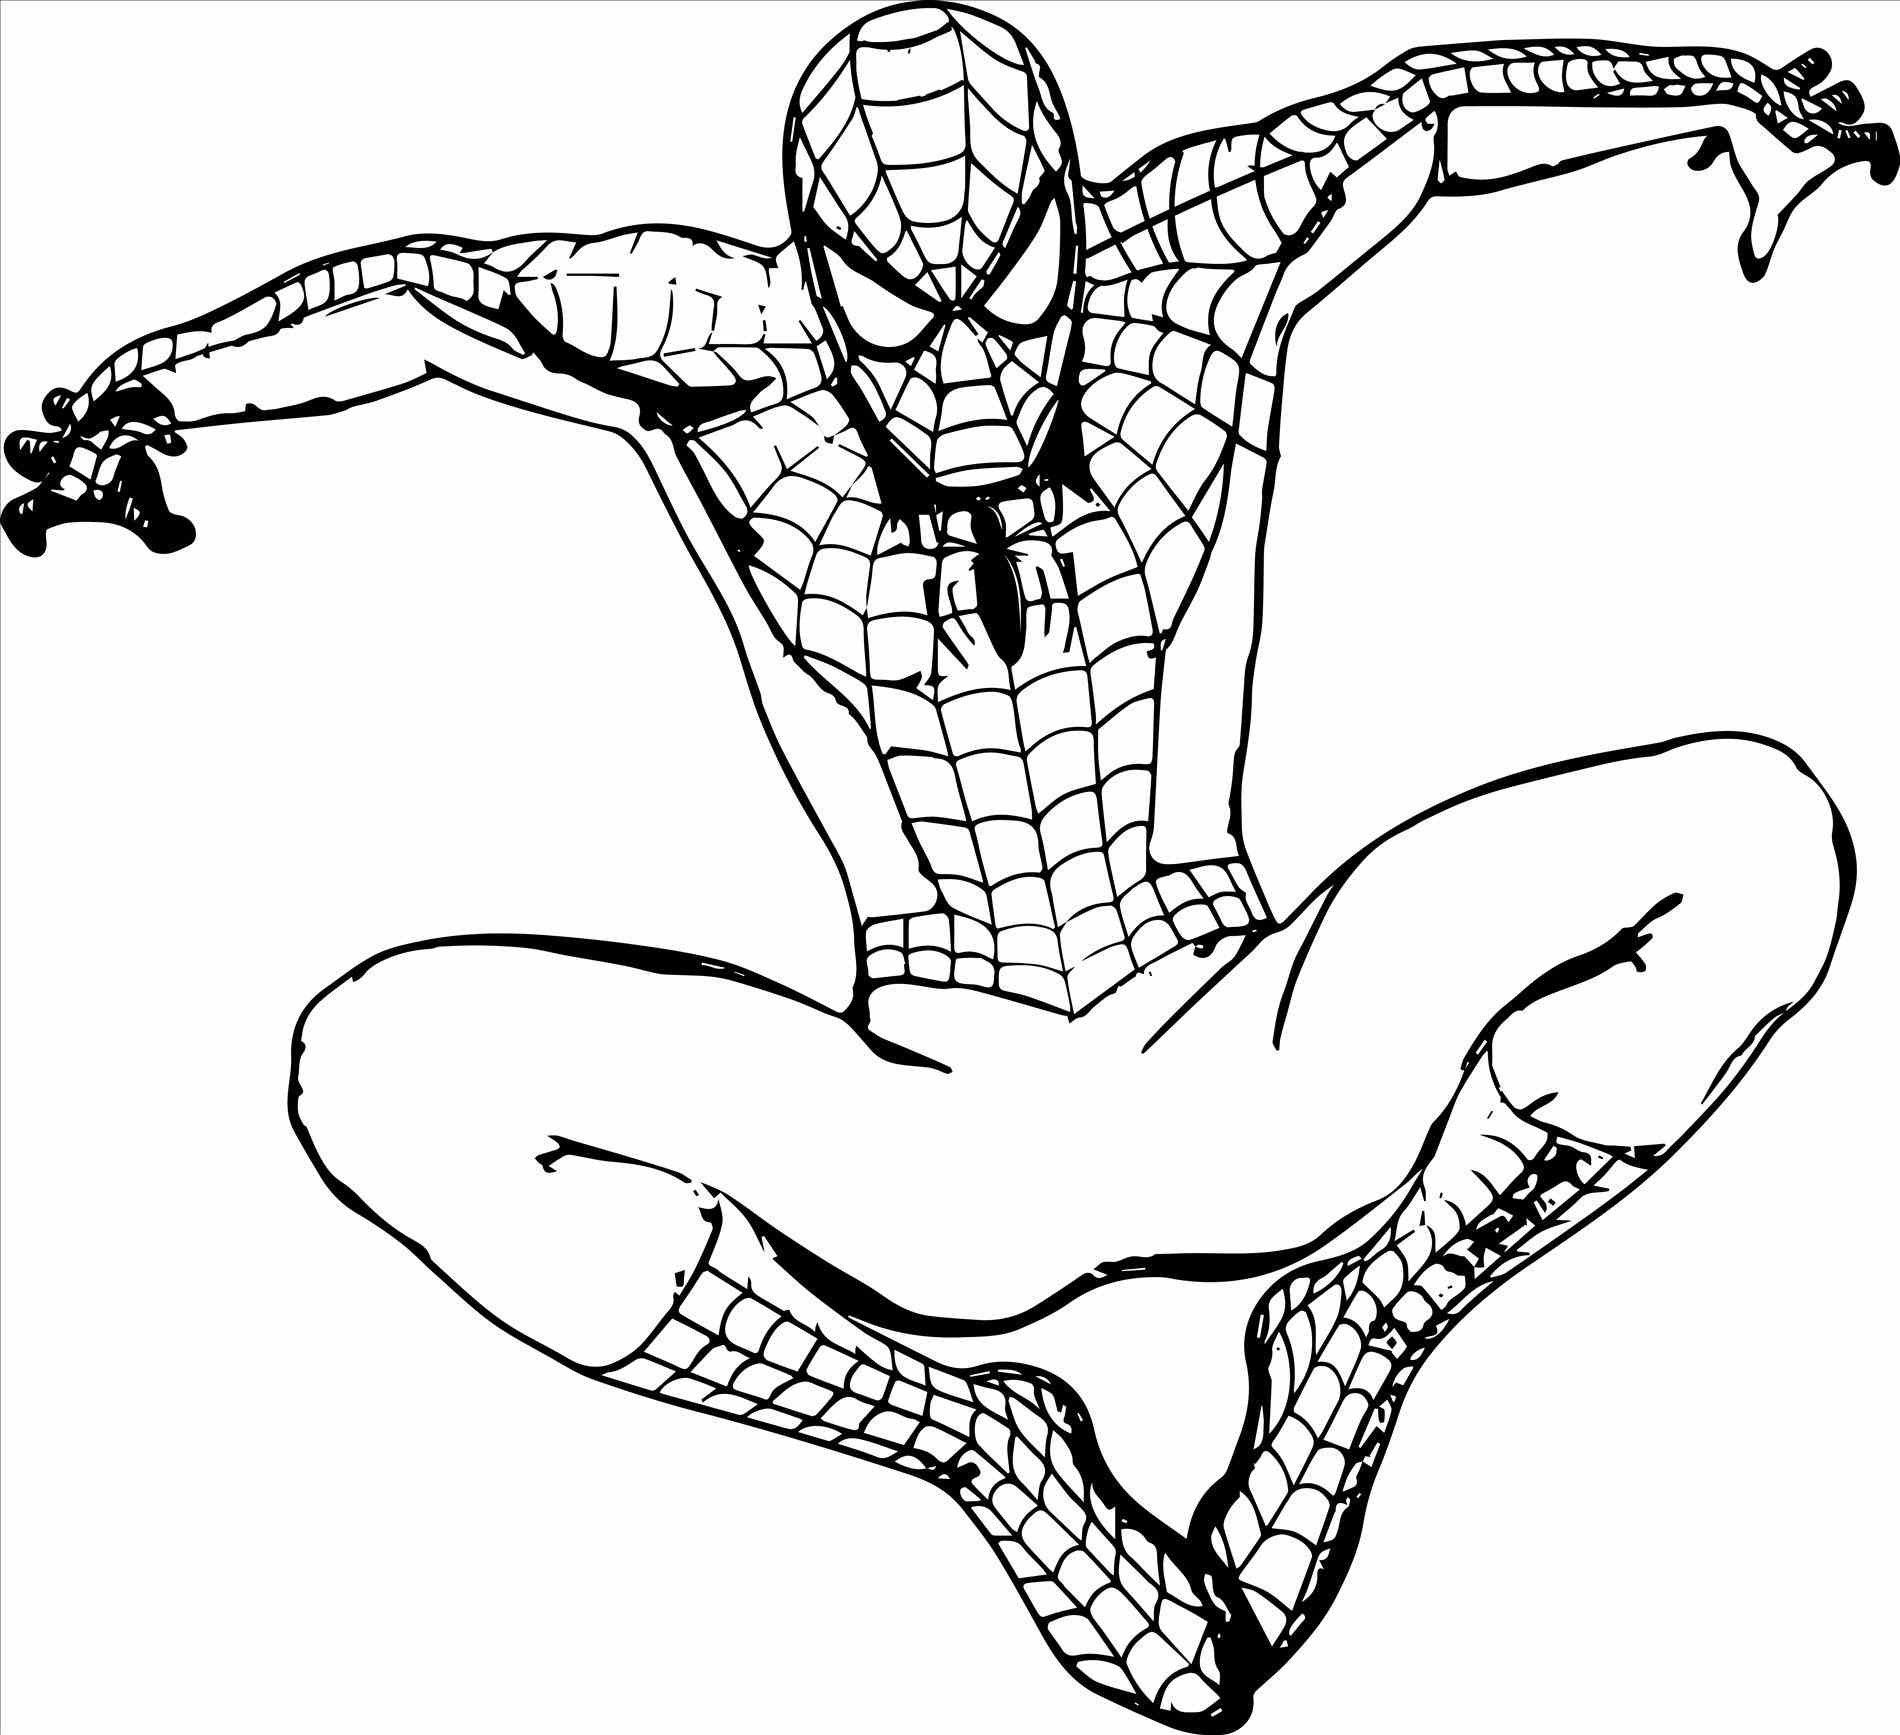 Free Printable Spiderman Coloring Pages For Kids Avengers Coloring Pages Superhero Coloring Spiderman Coloring